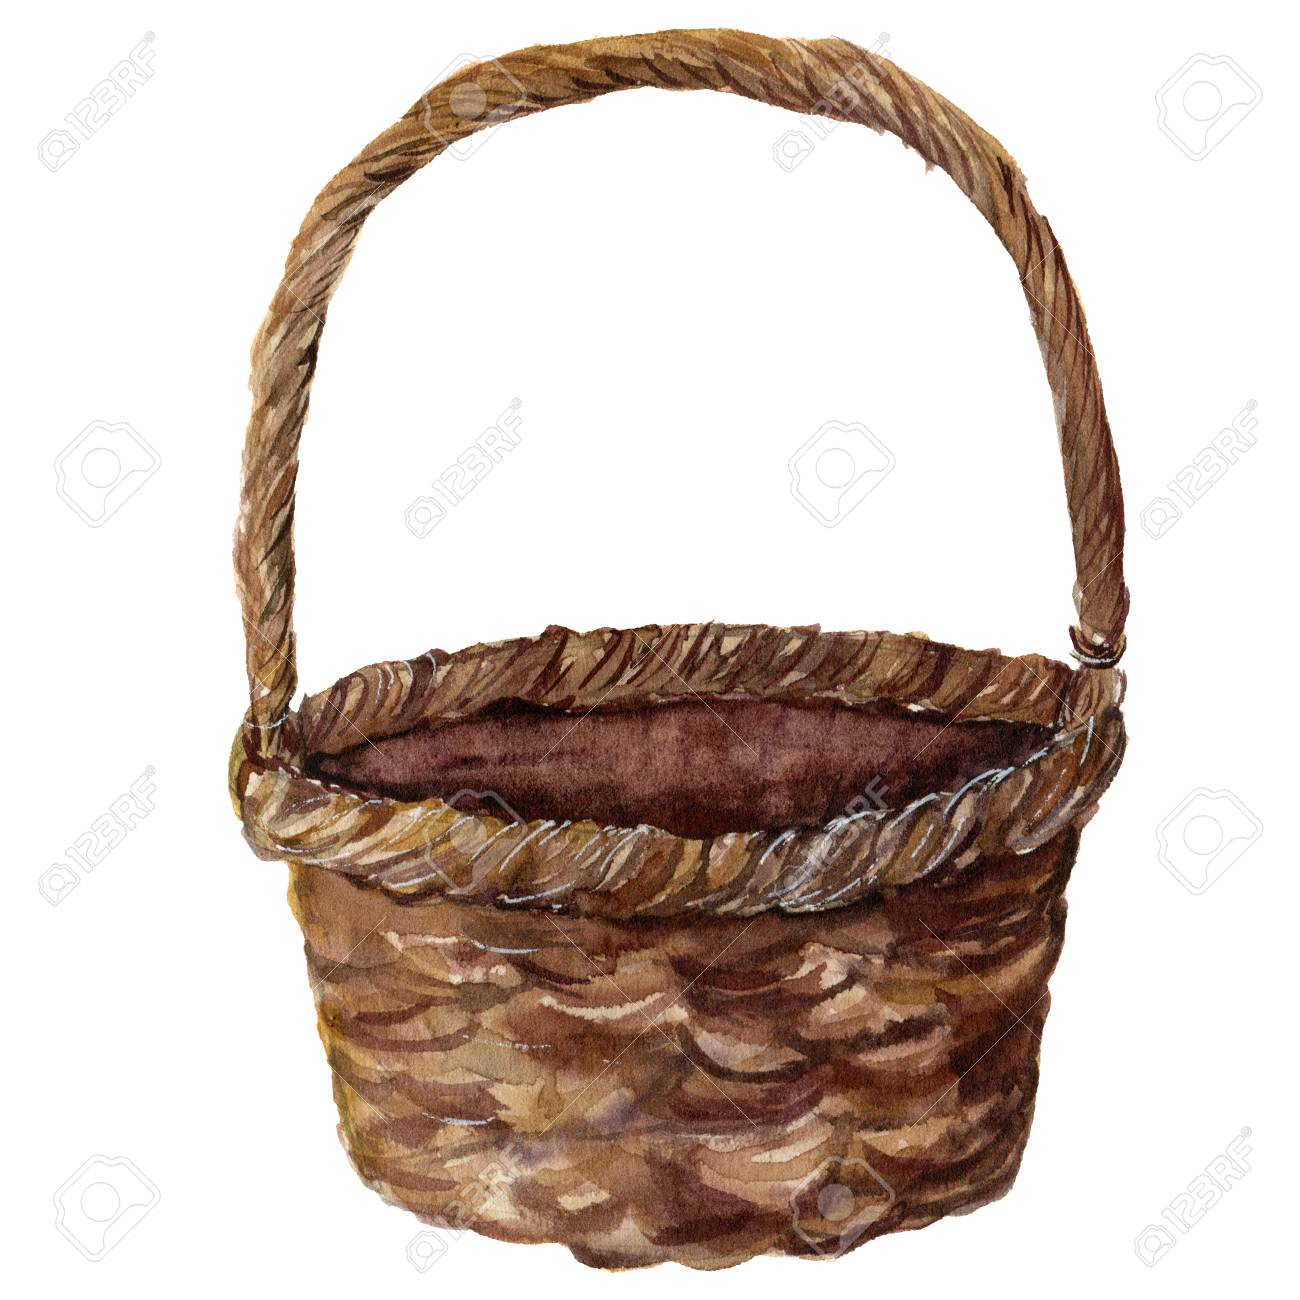 e26b5e96aa53 Watercolor straw basket. Hand painted wicker pad isolated on white  background. Realistic illustration for